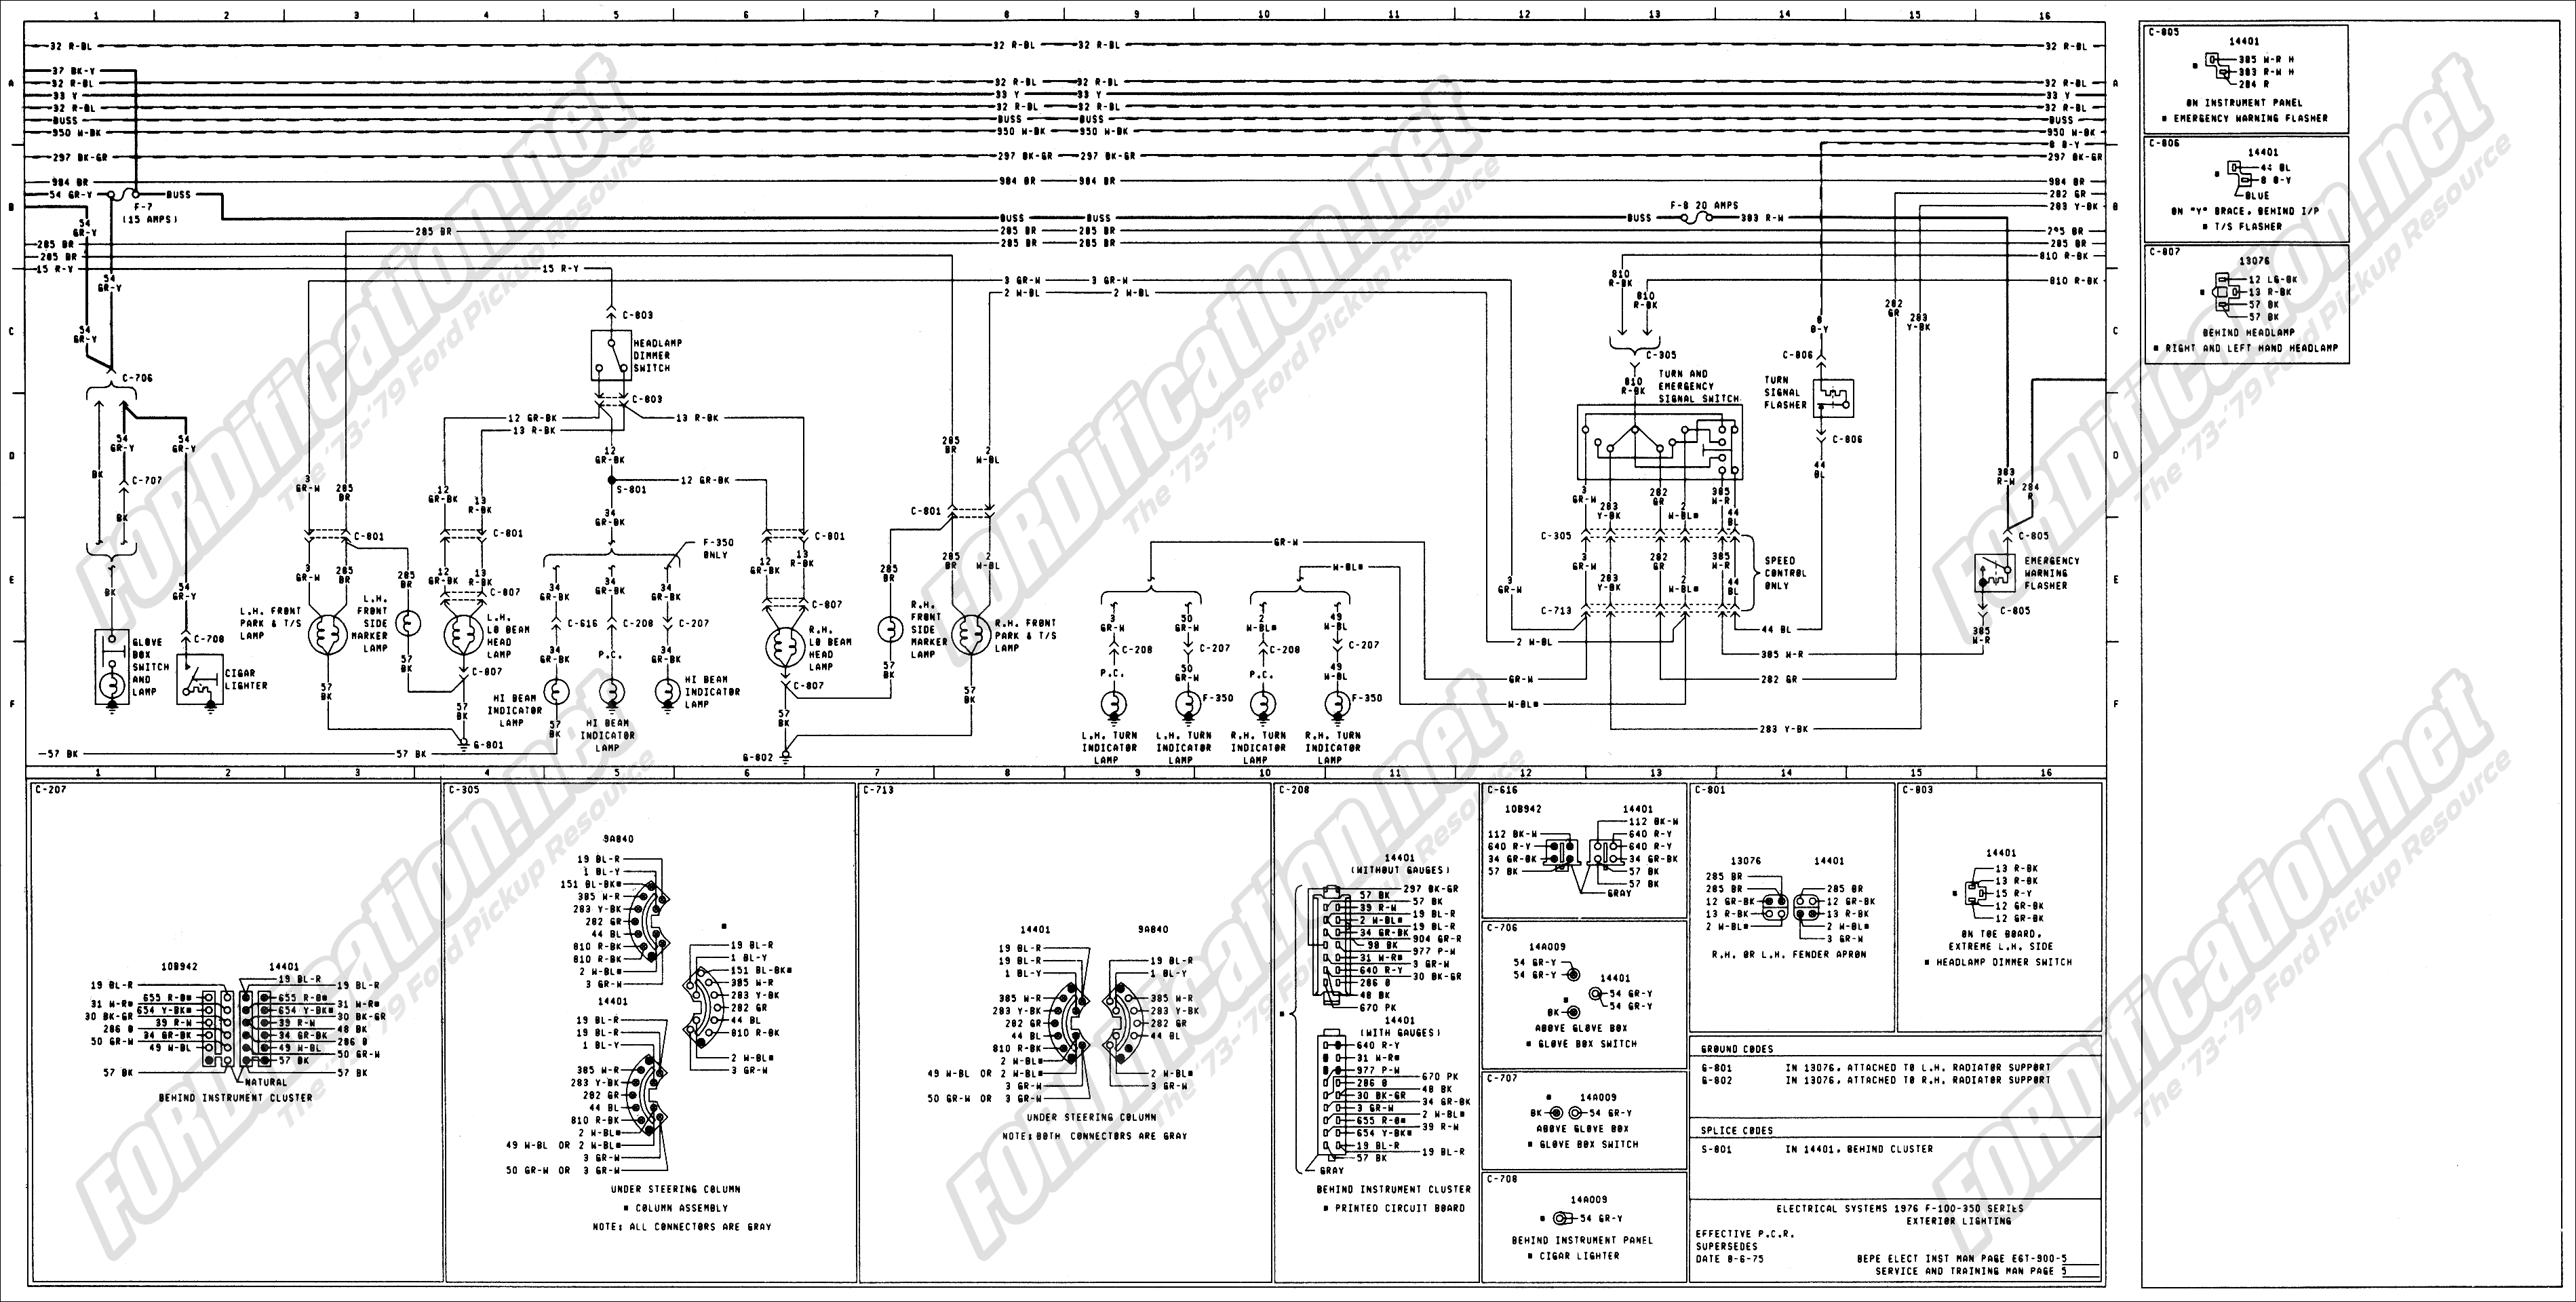 wiring diagrams ford the wiring diagram 1973 1979 ford truck wiring diagrams schematics fordification wiring diagram